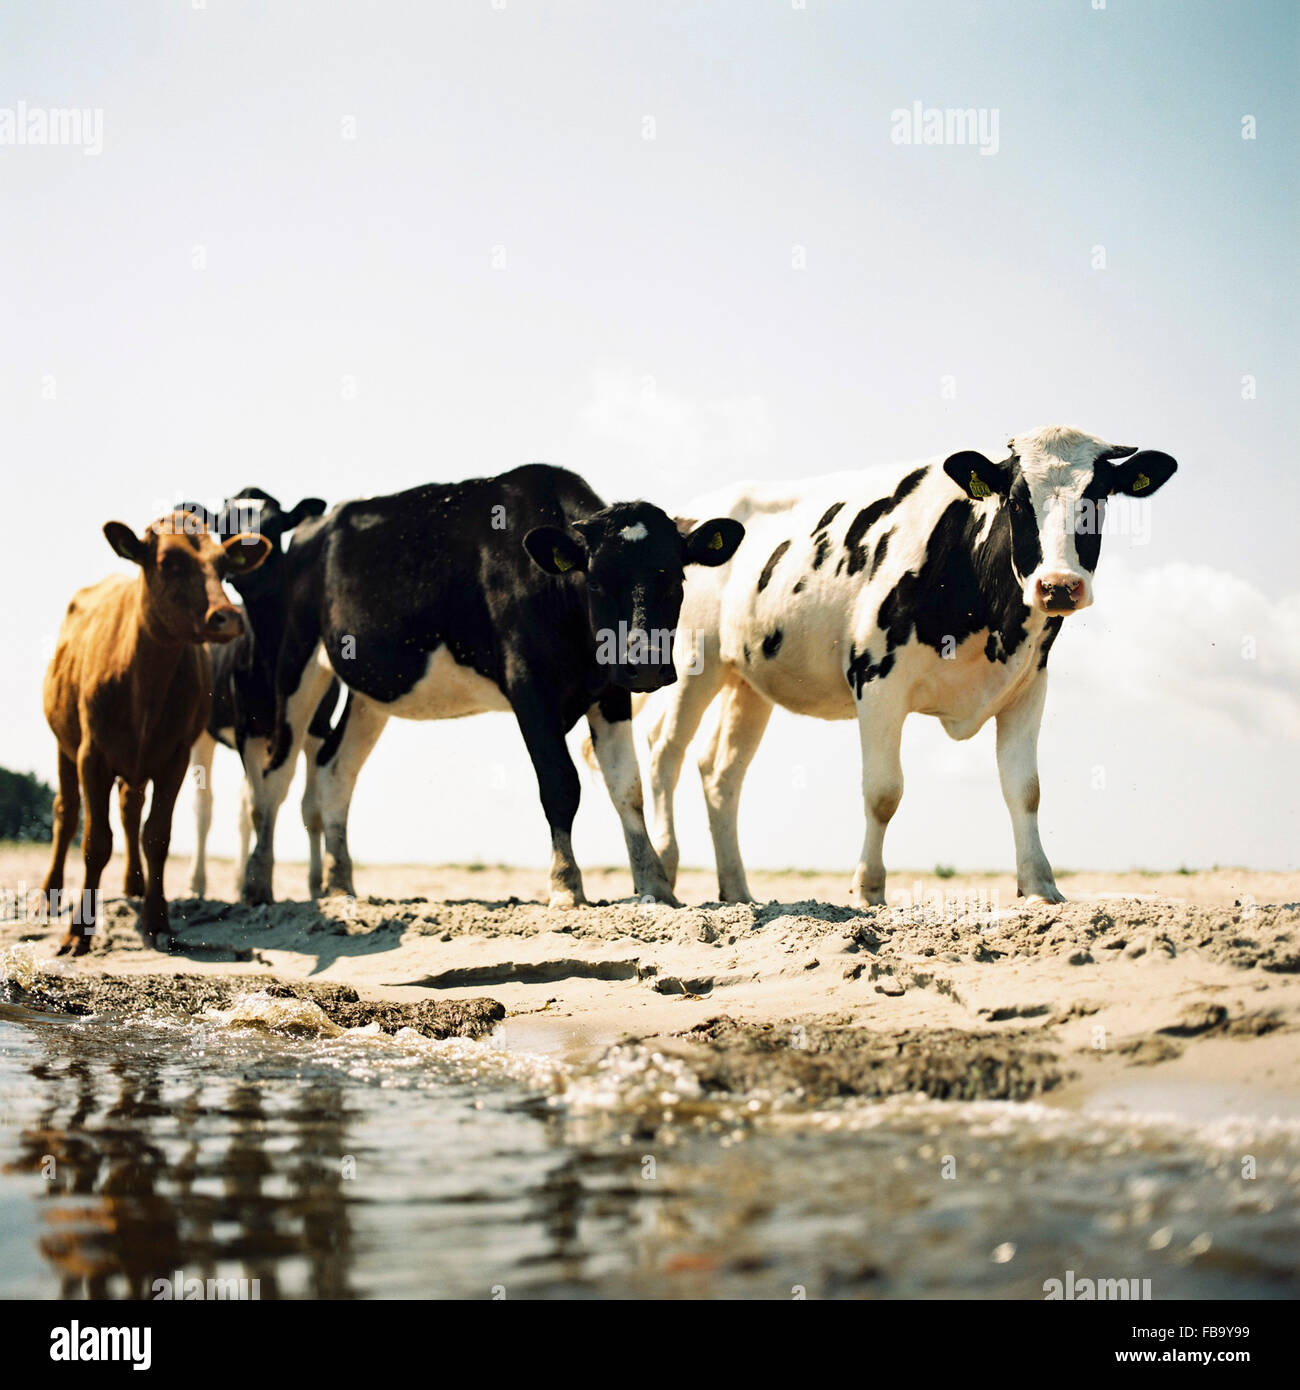 Sweden, Oland, Four cows on beach - Stock Image